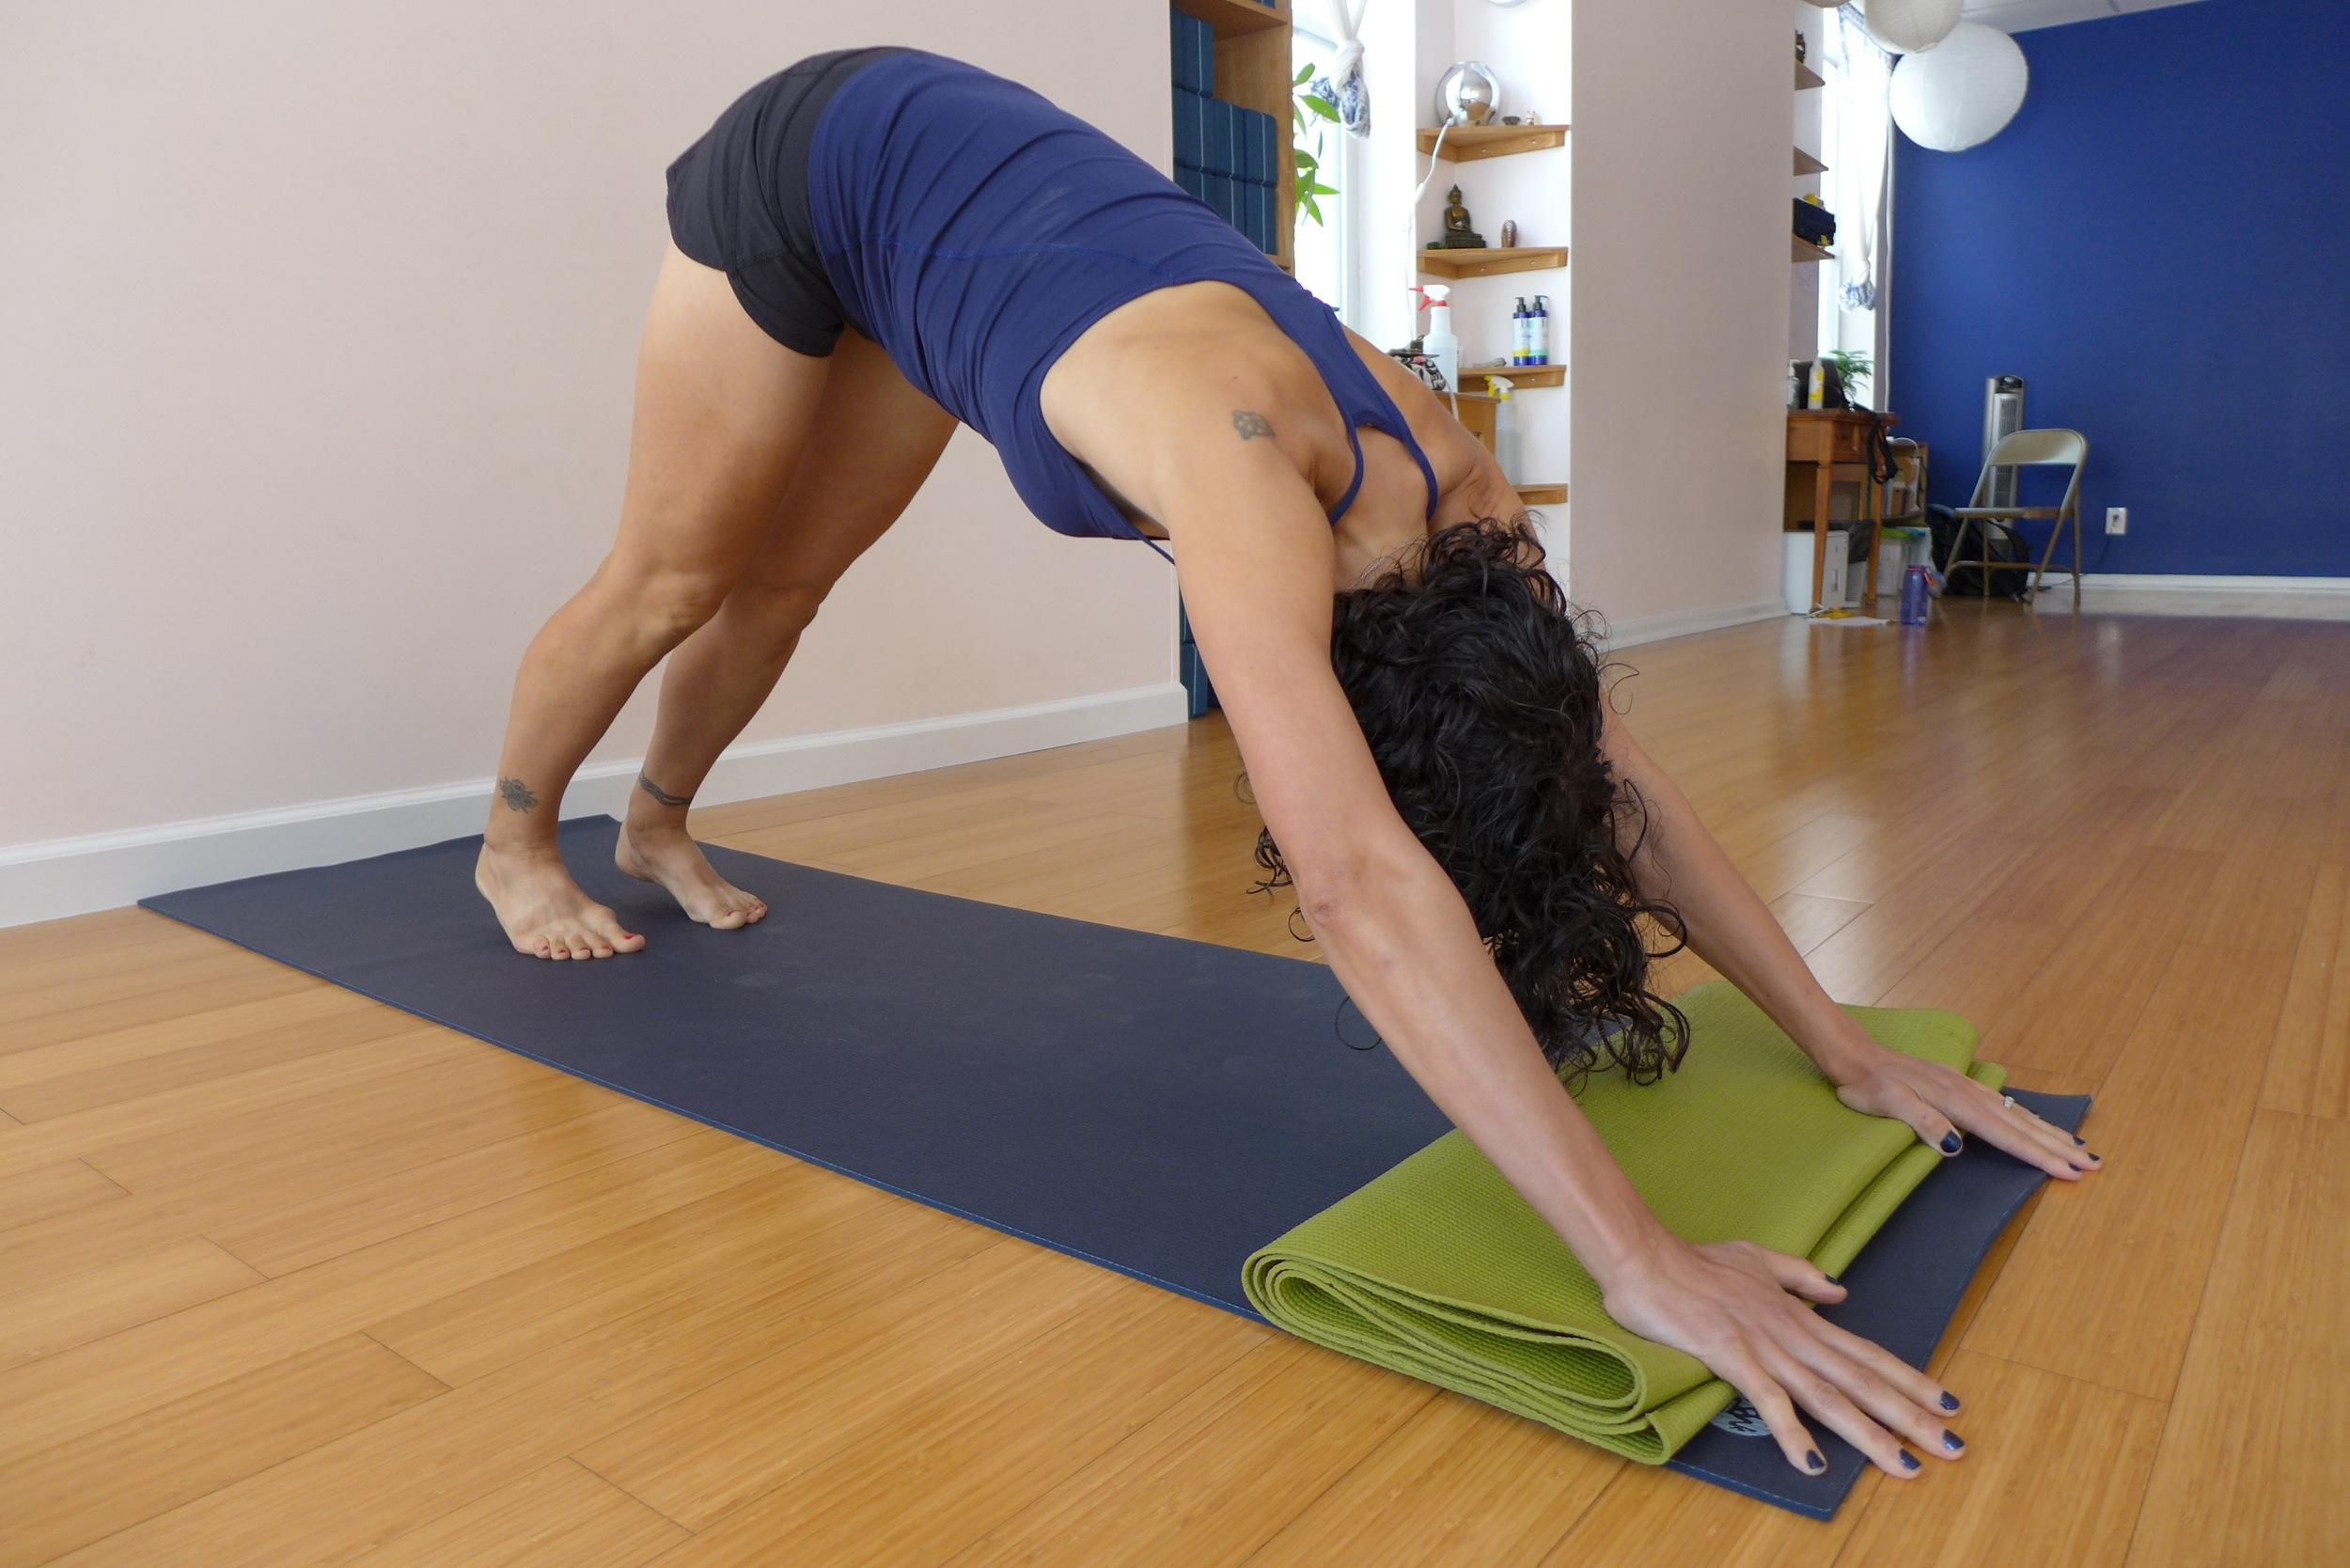 Down dog, alternate hand placement, version 2. In this one, place the heels of your hands and your knuckles on the mat, Have your fingers and finger tips off the mat. This is a good version if you have a hard time getting your fingertips and knuckles on the floor.